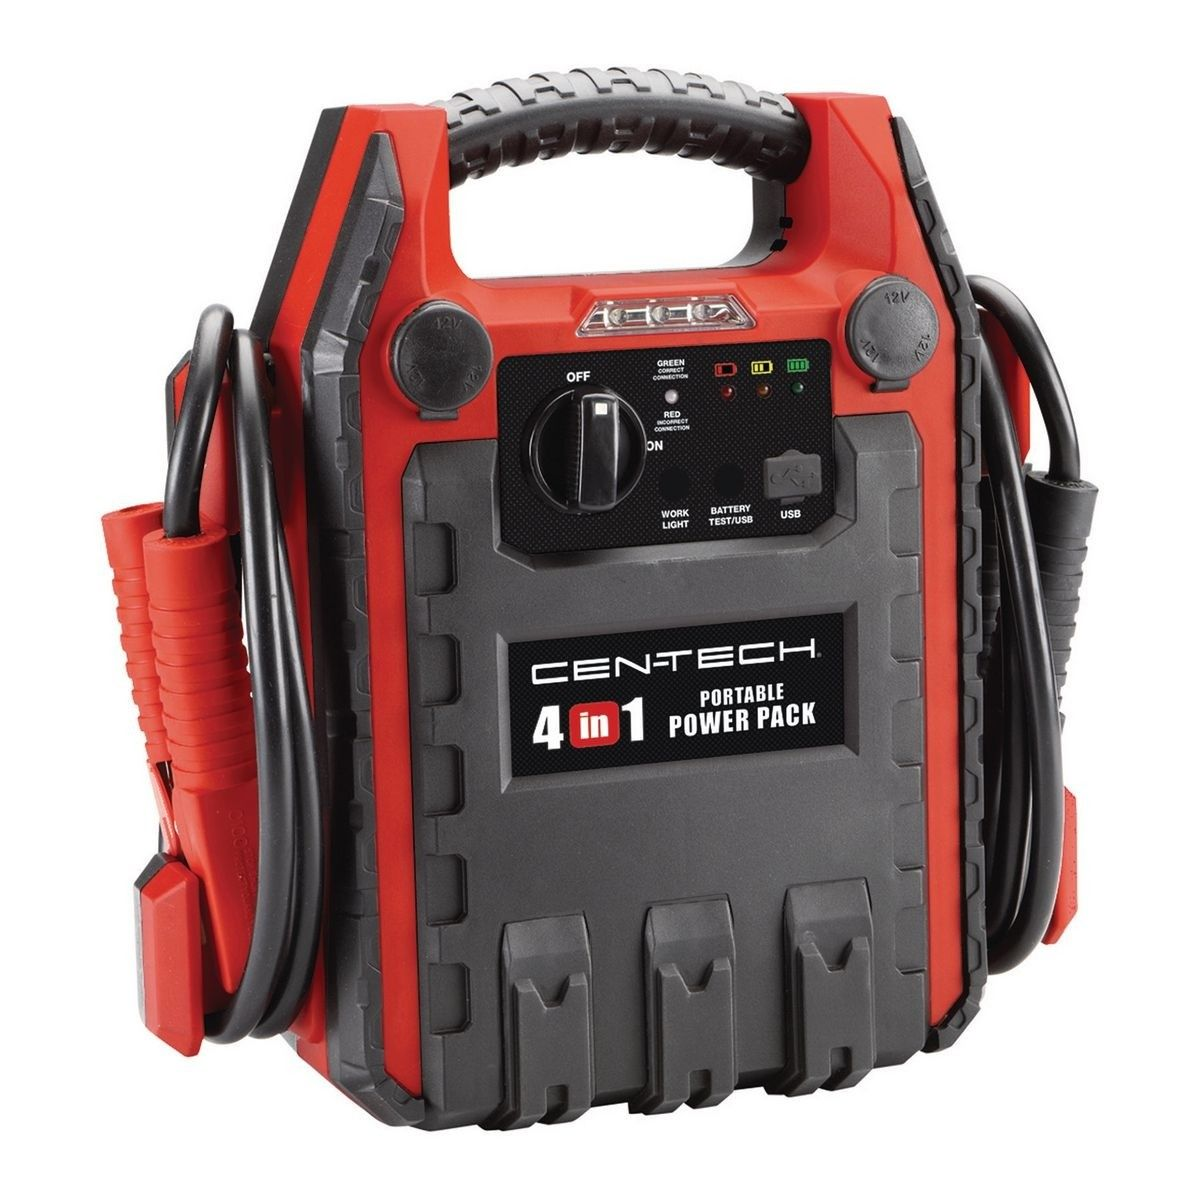 4In1 Power Pack With Jump Starter and Compressor Cable